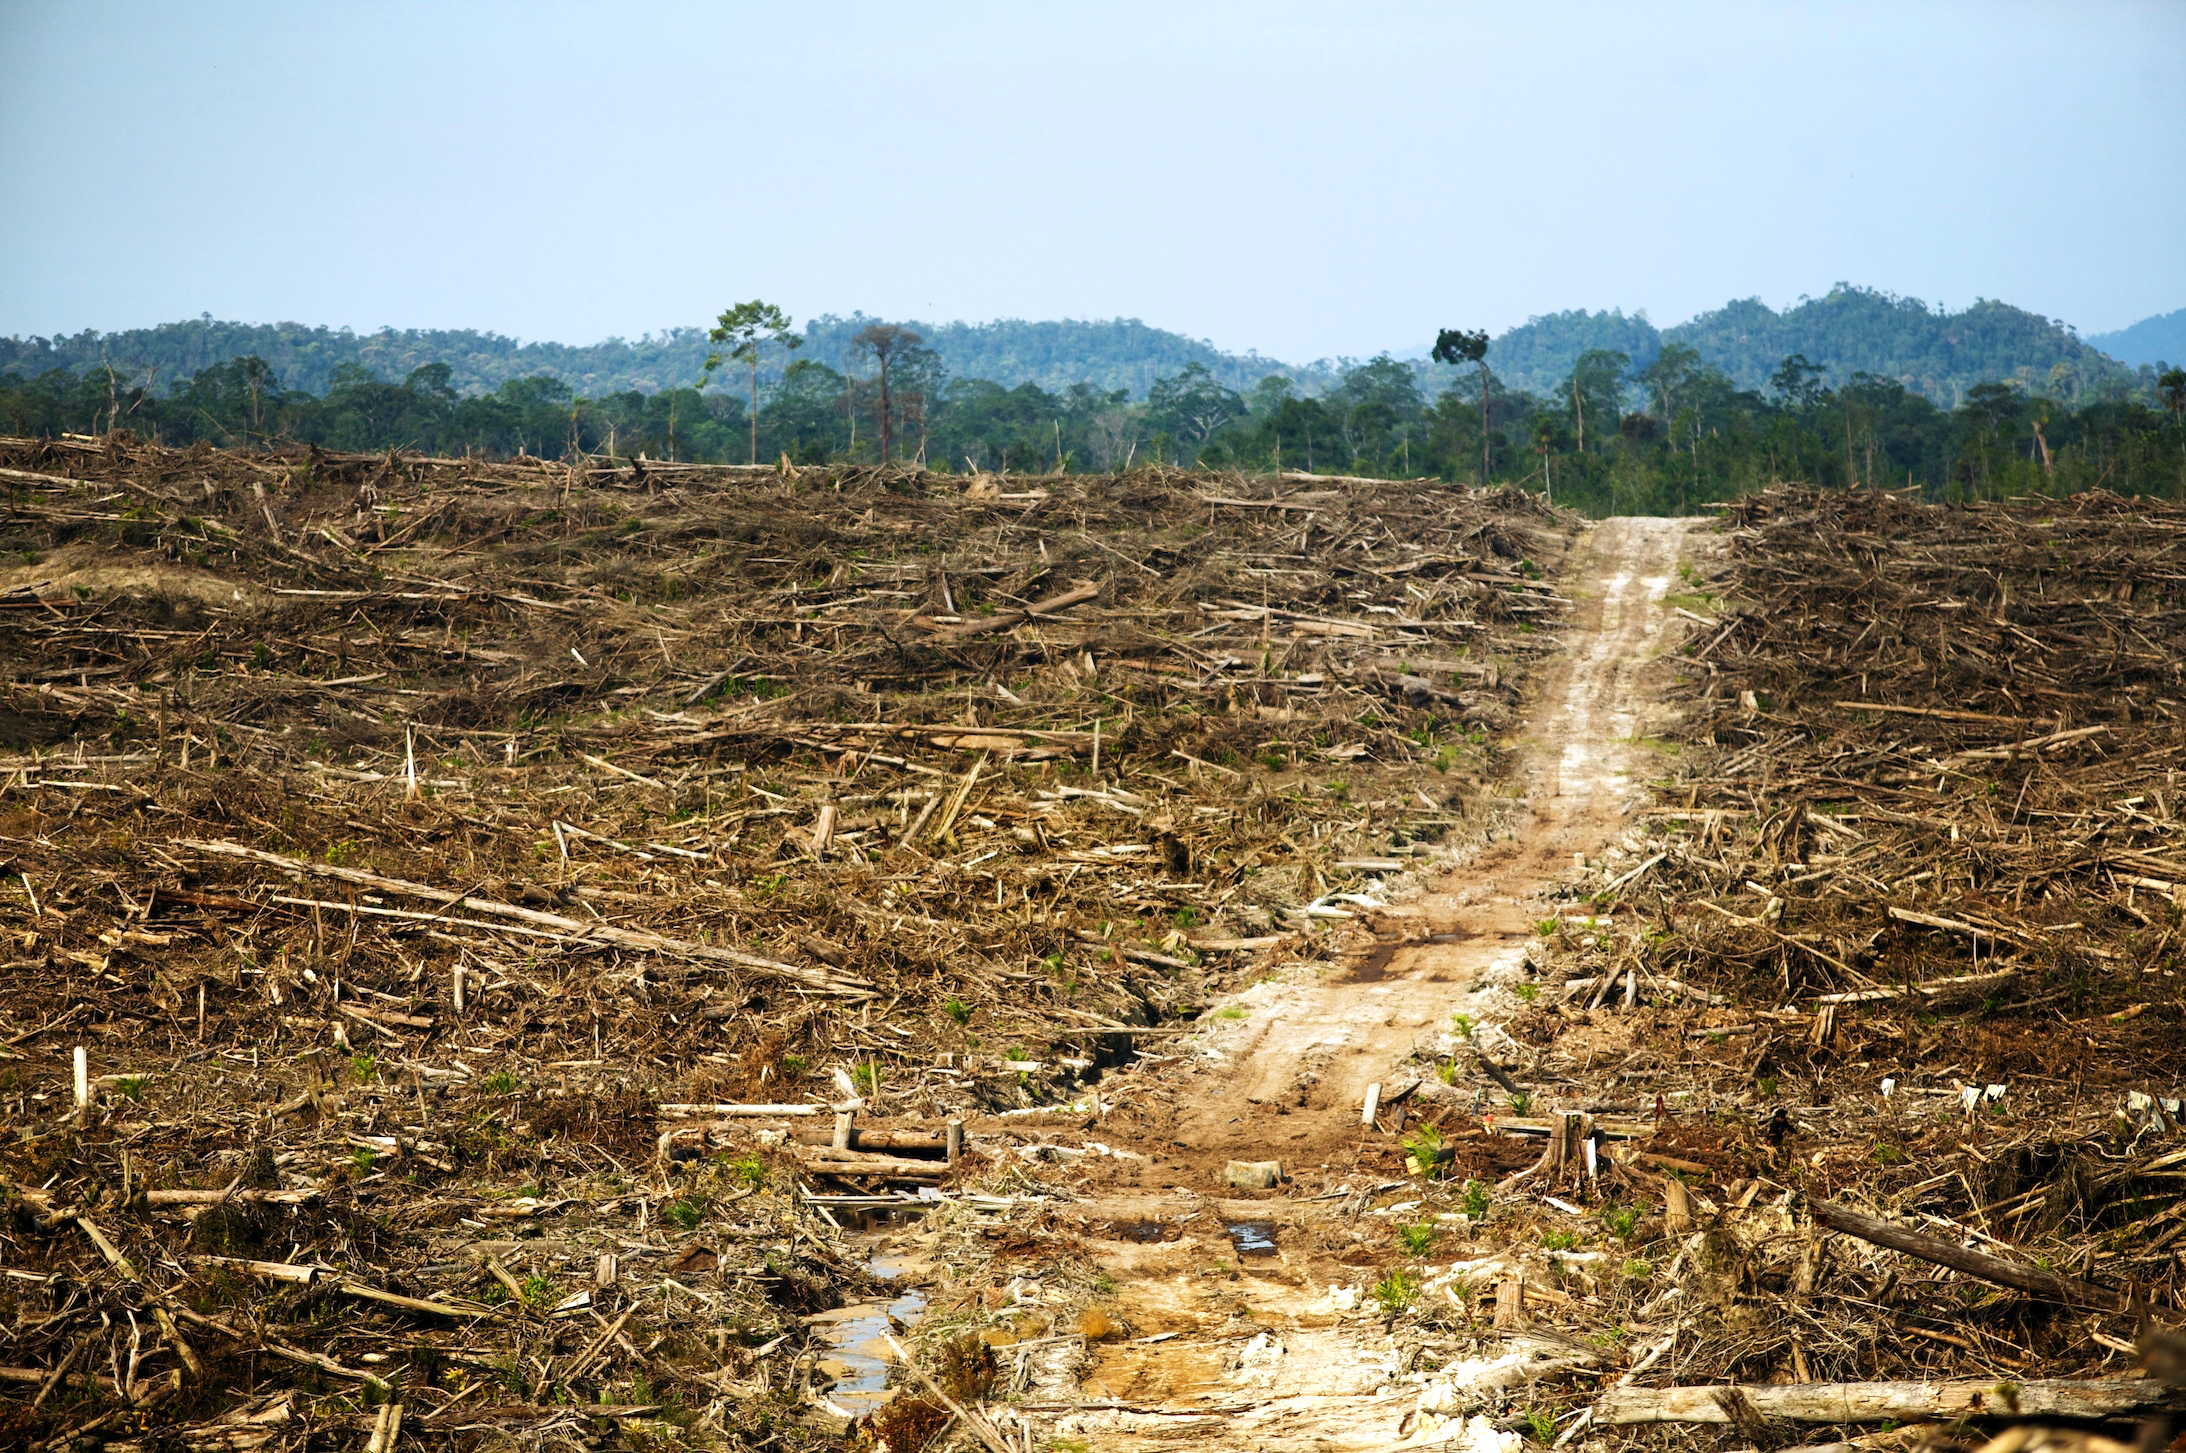 Effects of Deforestation in Borneo - Deck Up